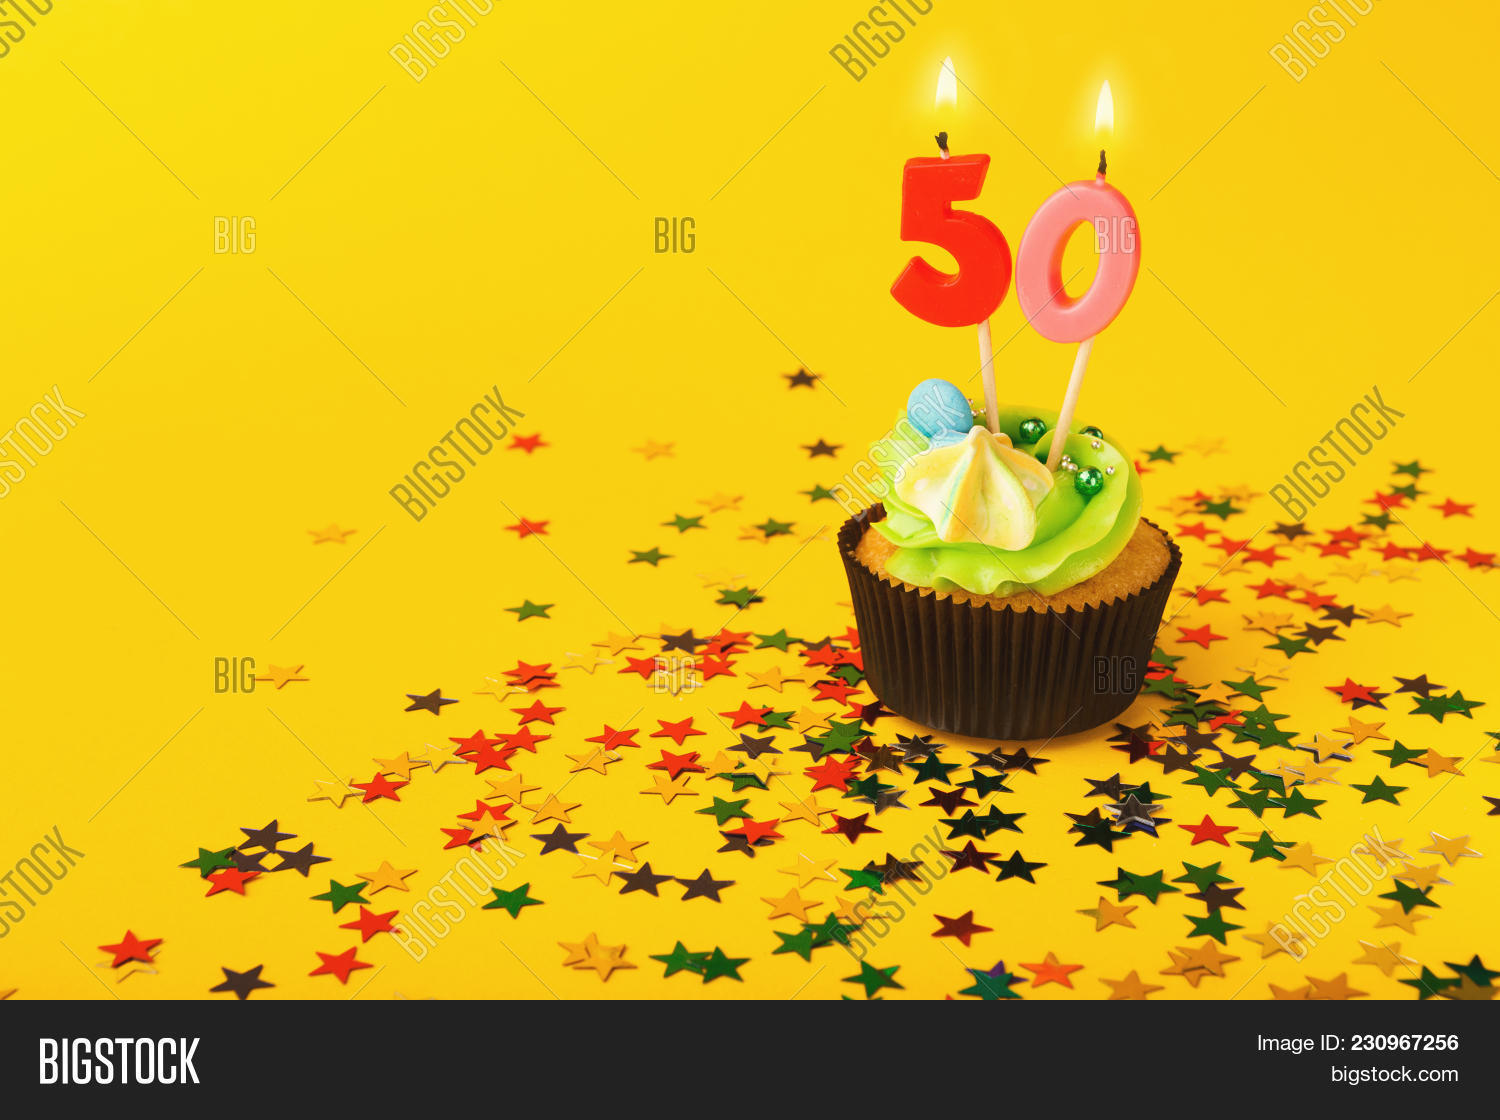 50th Birthday Cupcake With Candle And Sprinkles On Yellow Background Card Mockup Copy Space Party Holiday Concept